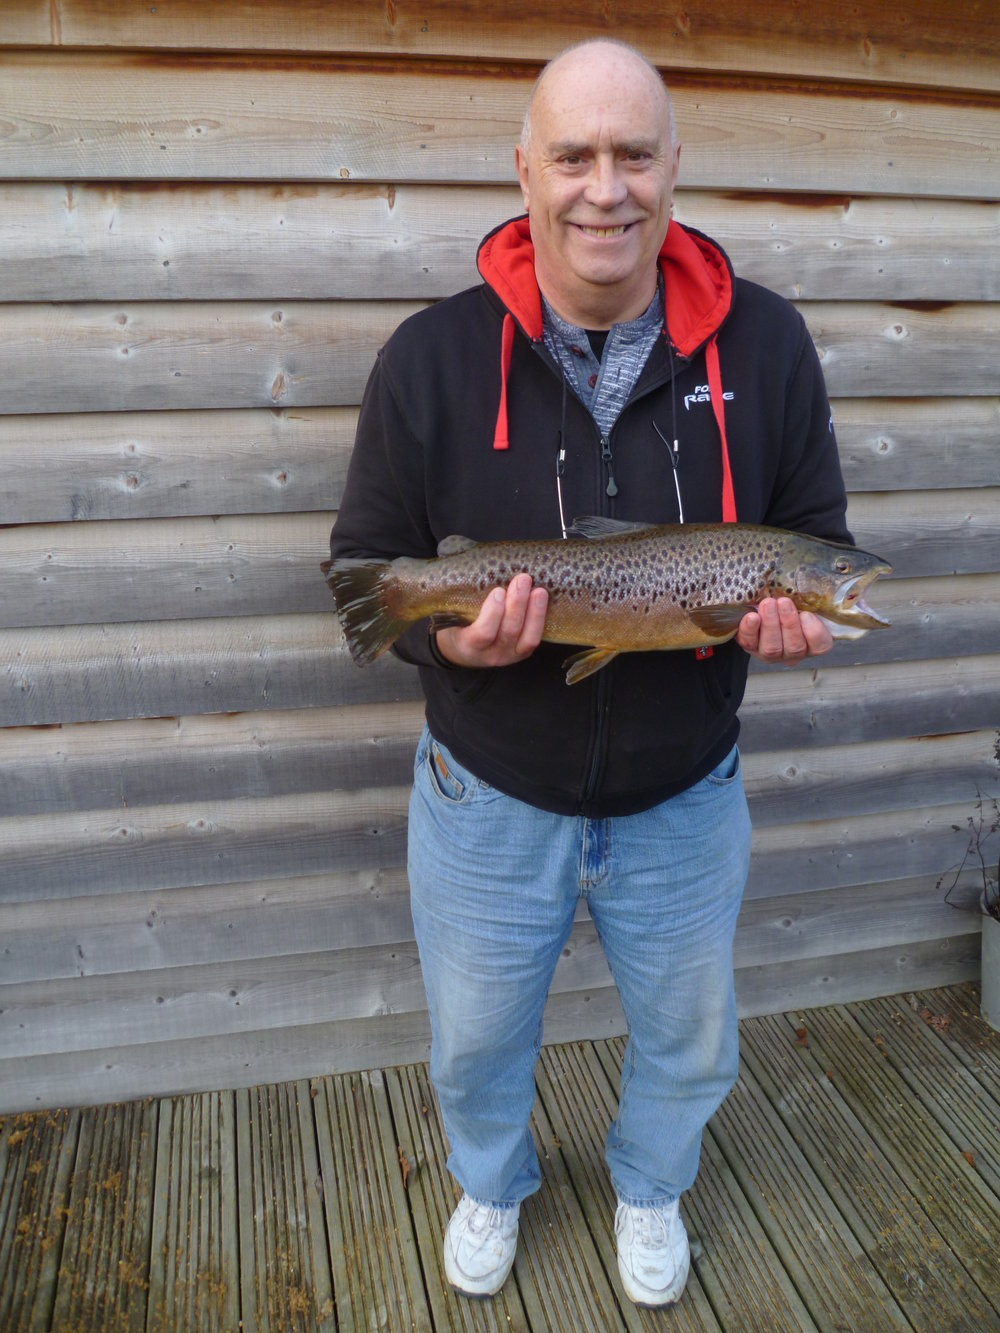 John Baldwin with a 5lbs 13oz Brown caught on Boxing Day - fantastic!